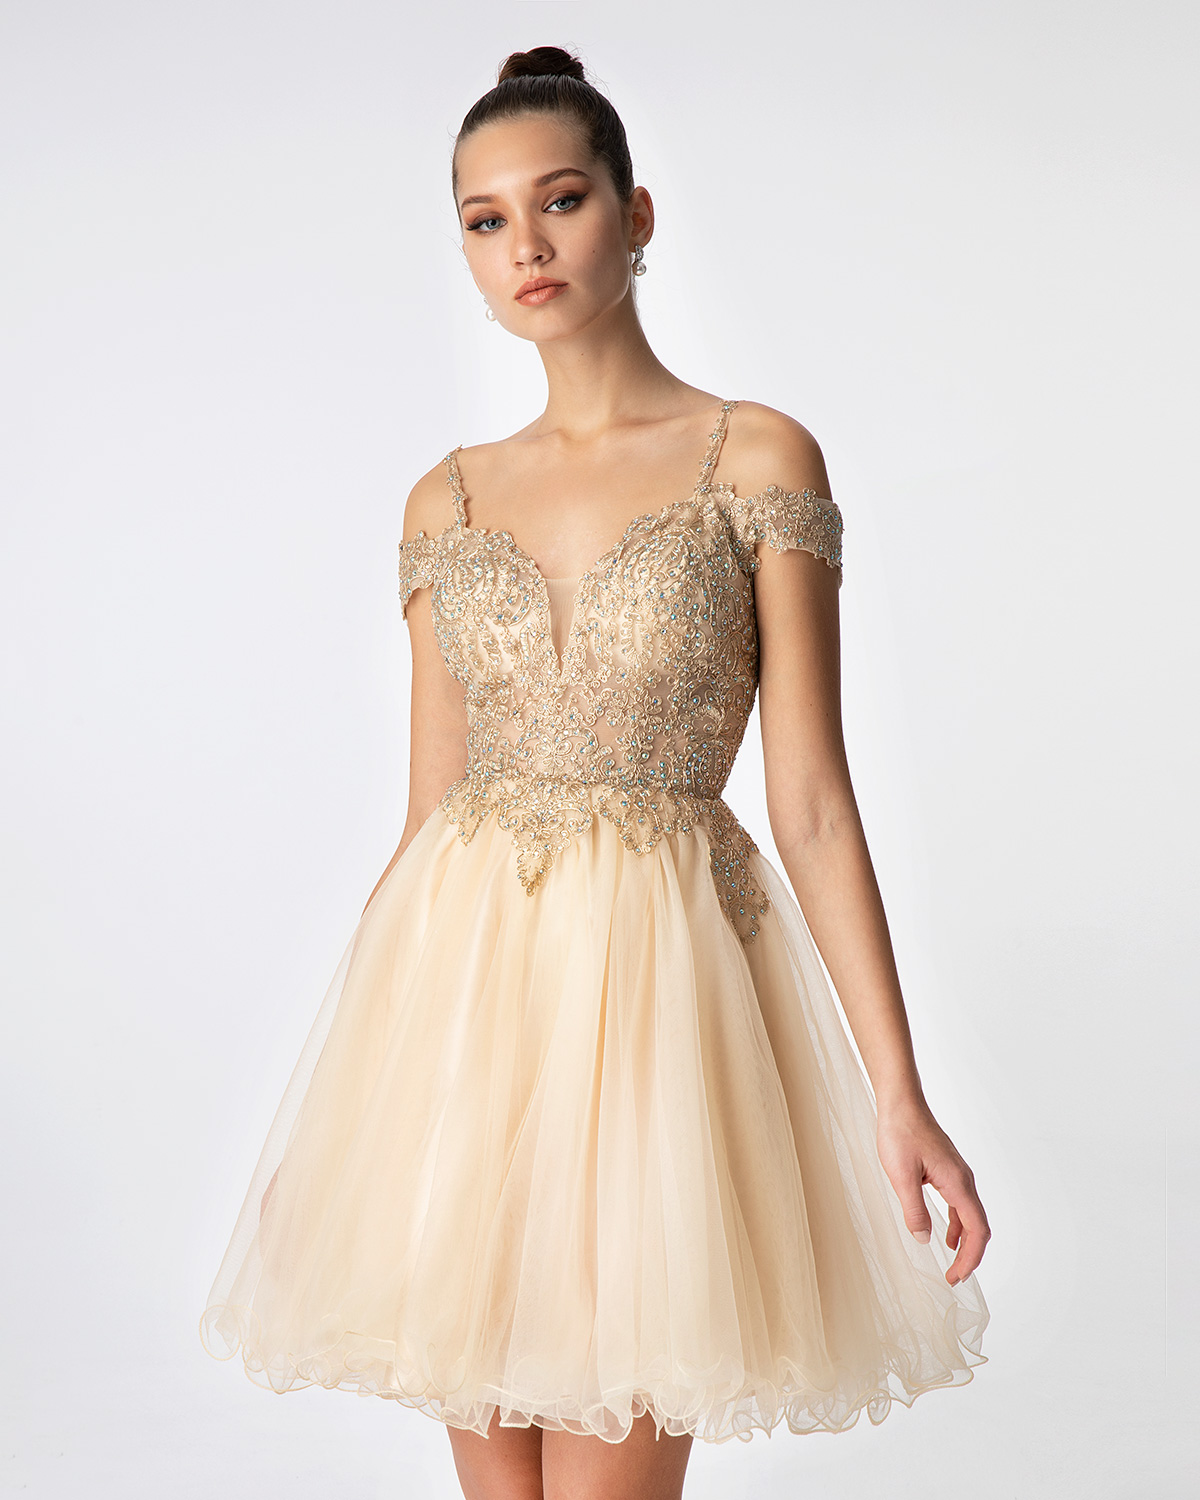 Cocktail Dresses / Cocktail short tulle dress with beaded top